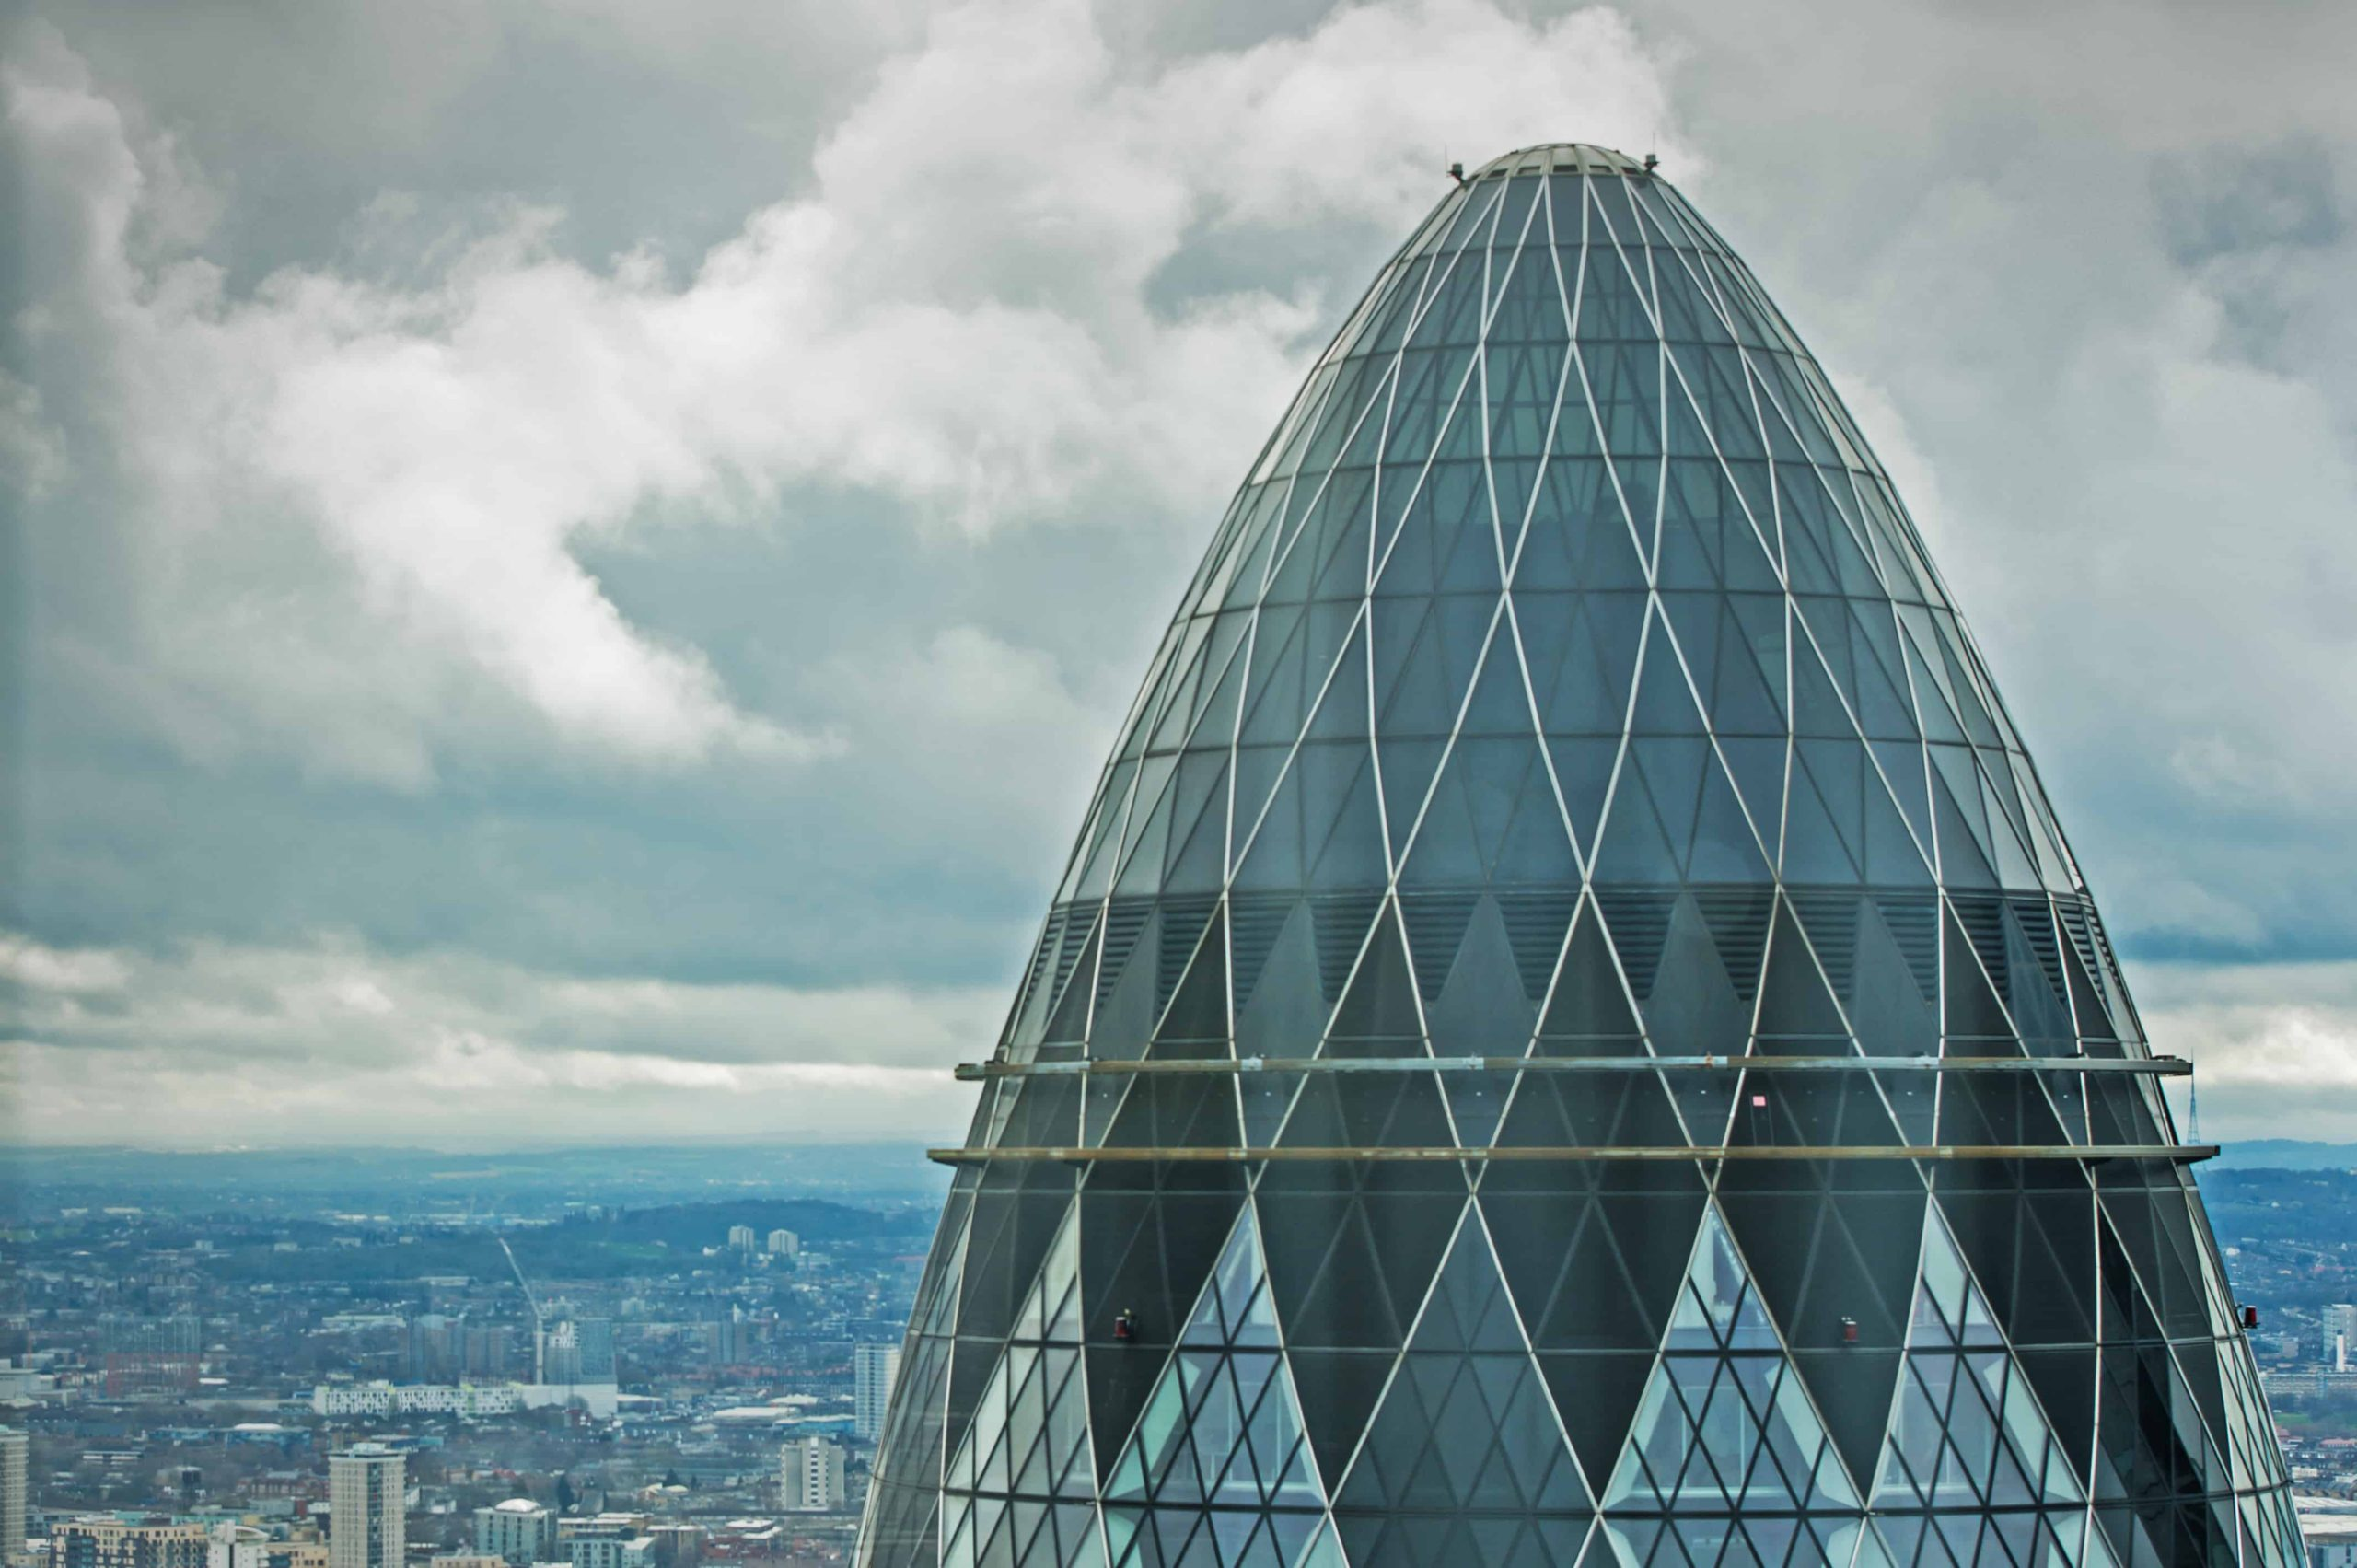 Photograph of The Gherkin in The City of London